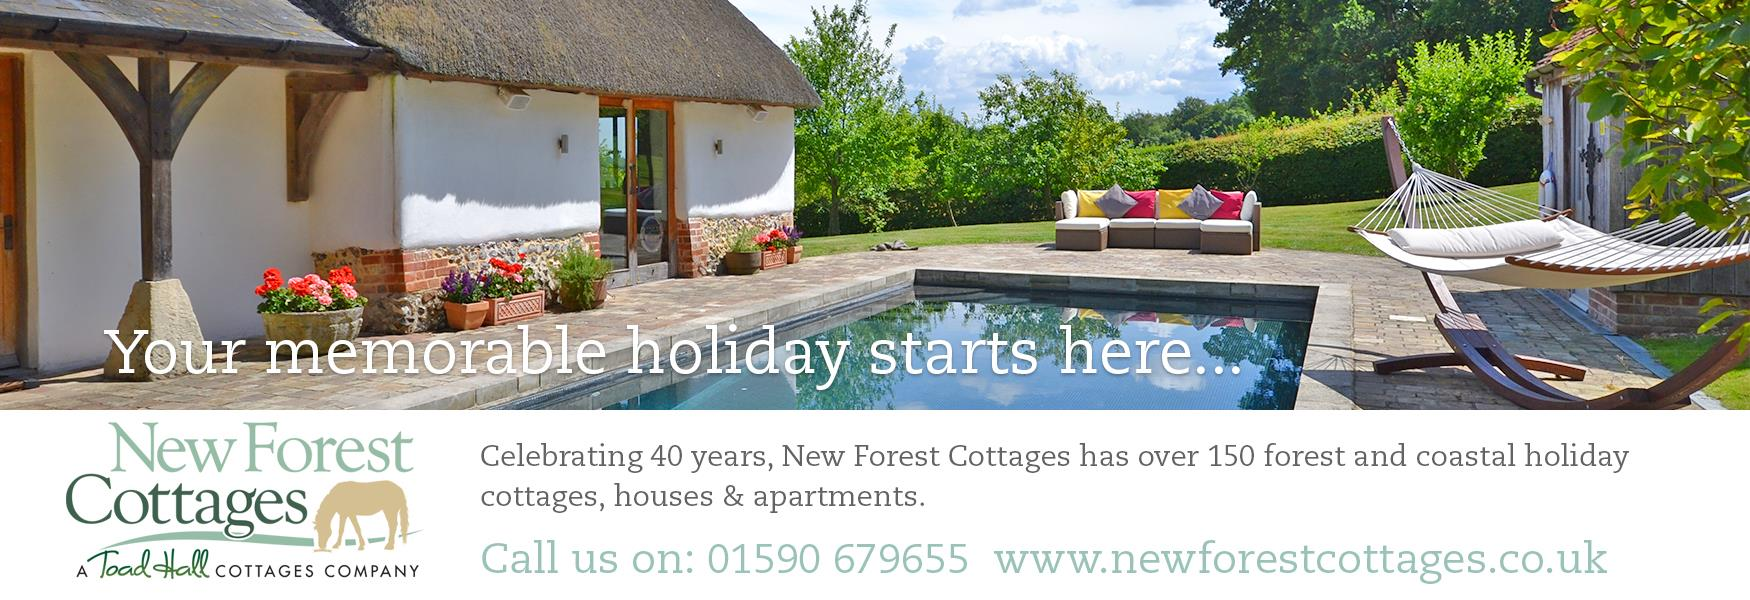 Best New Forest Cottages & Lodges | Self Catering Apartments